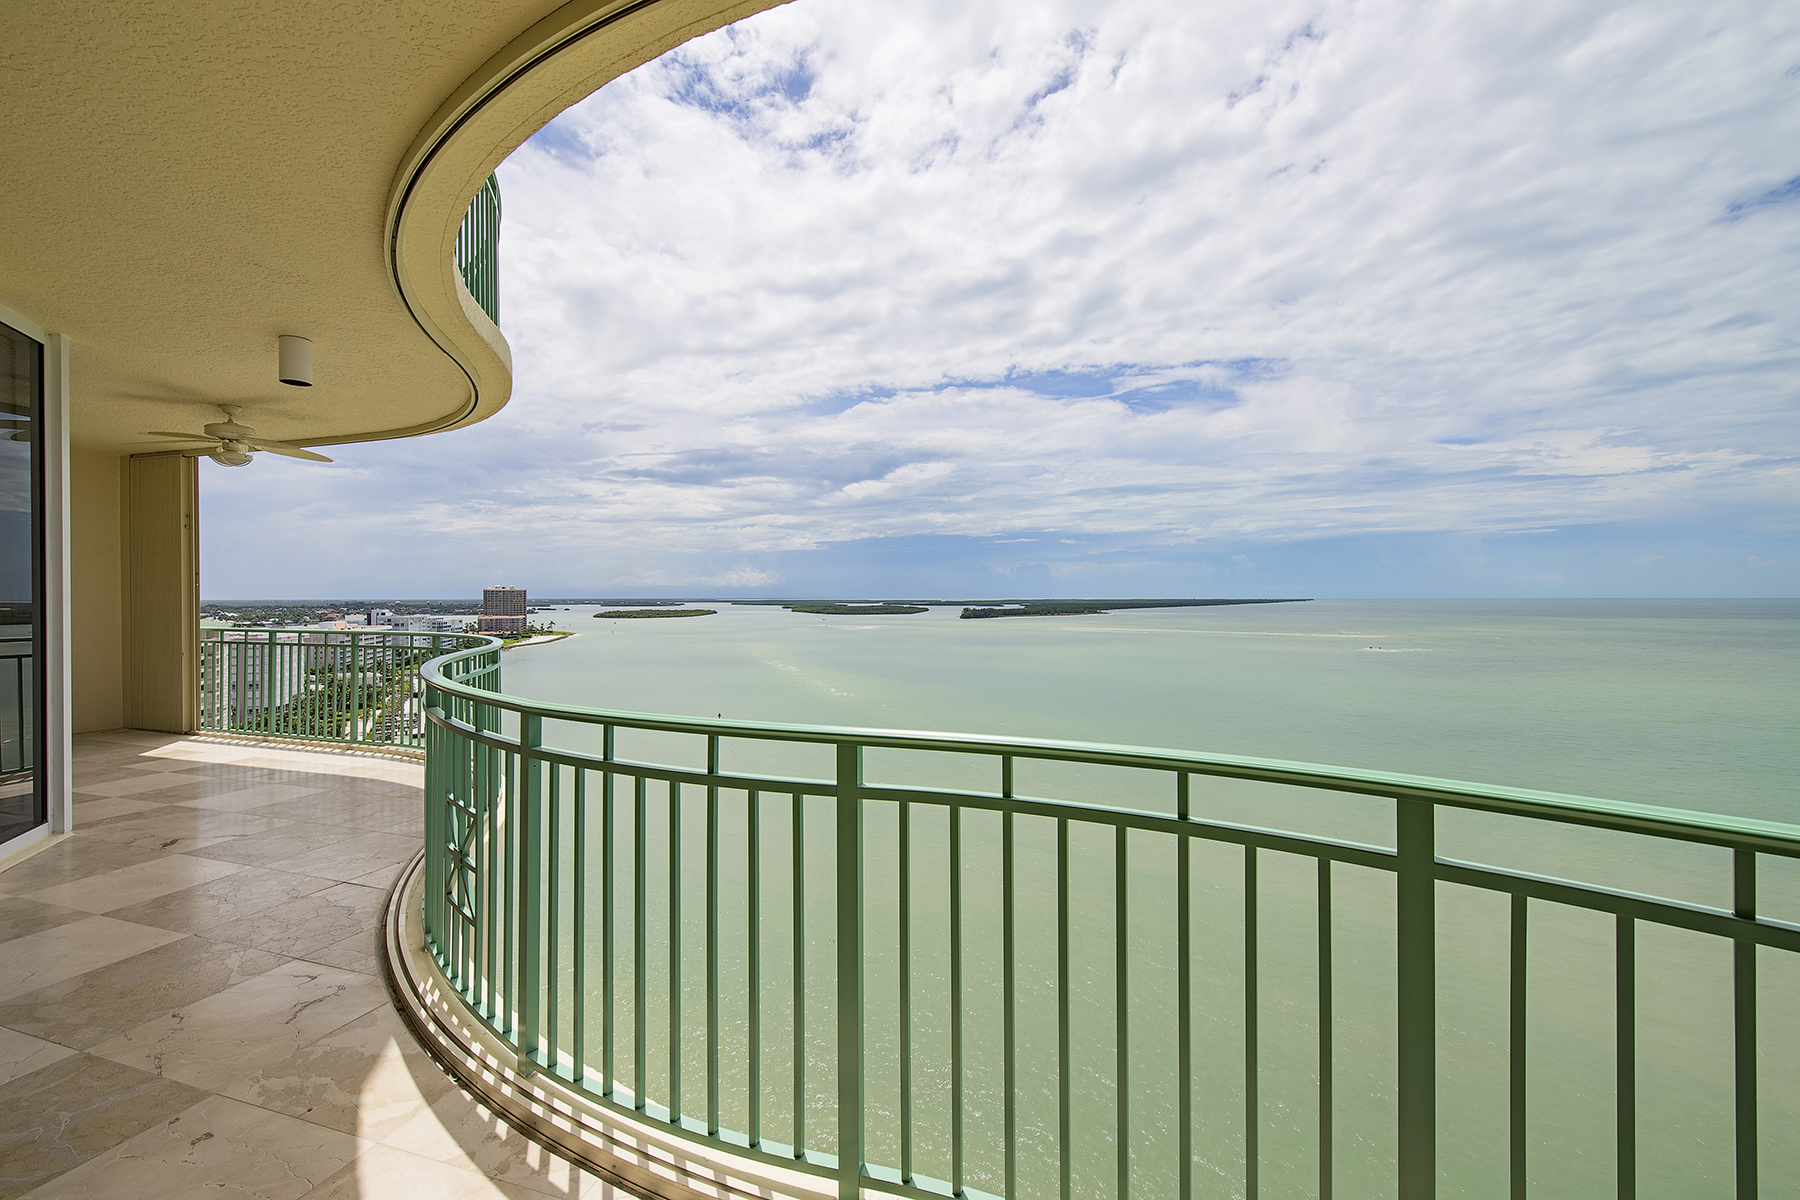 Condominium for Sale at CAPE MARCO - BELIZE 970 Cape Marco Dr 1504 Marco Island, Florida, 34145 United States